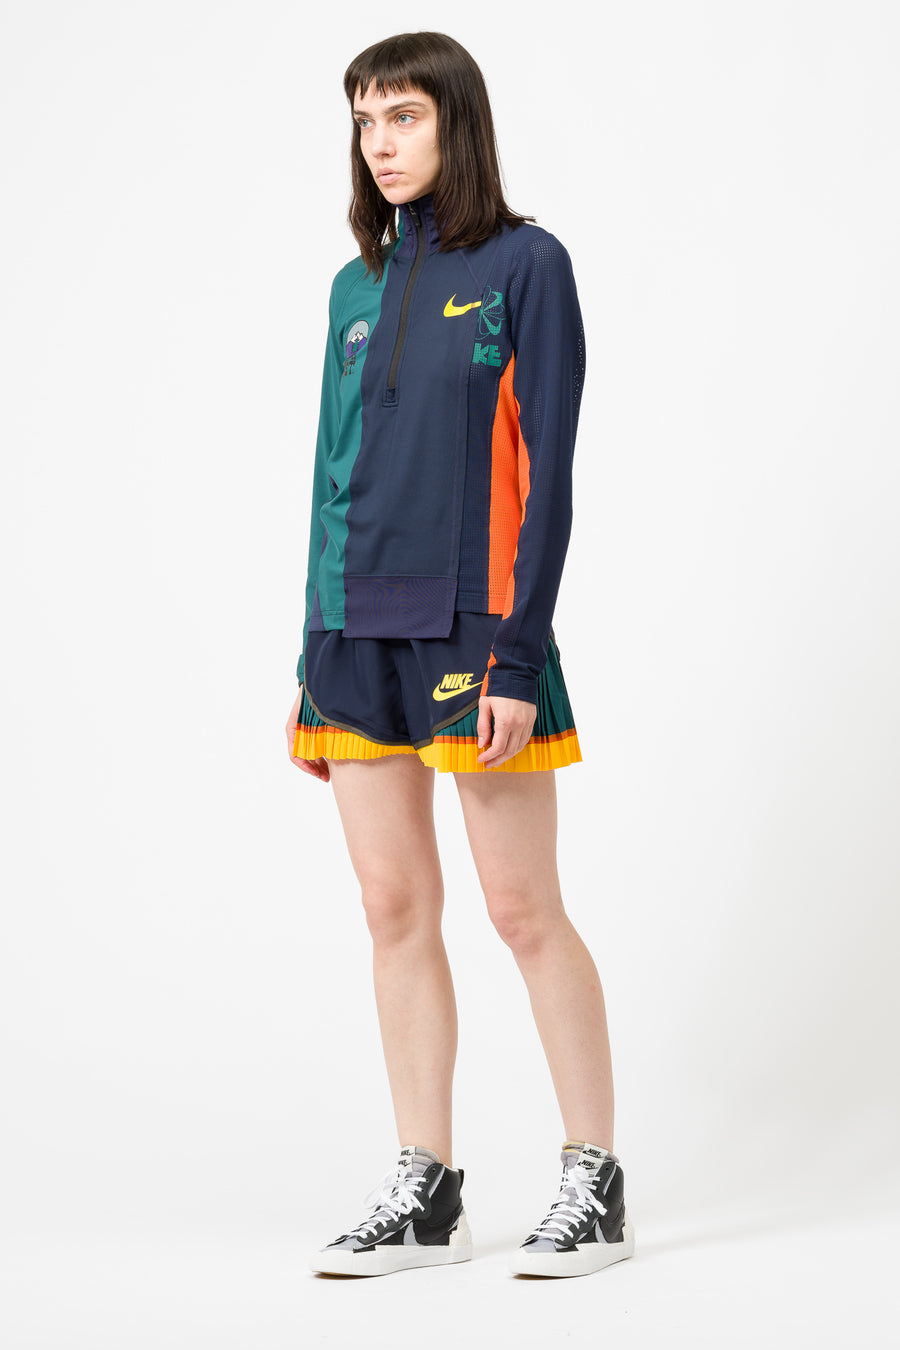 Nike Sacai Half-Zip Running Jacket in Obsidian/Rainforest - Notre